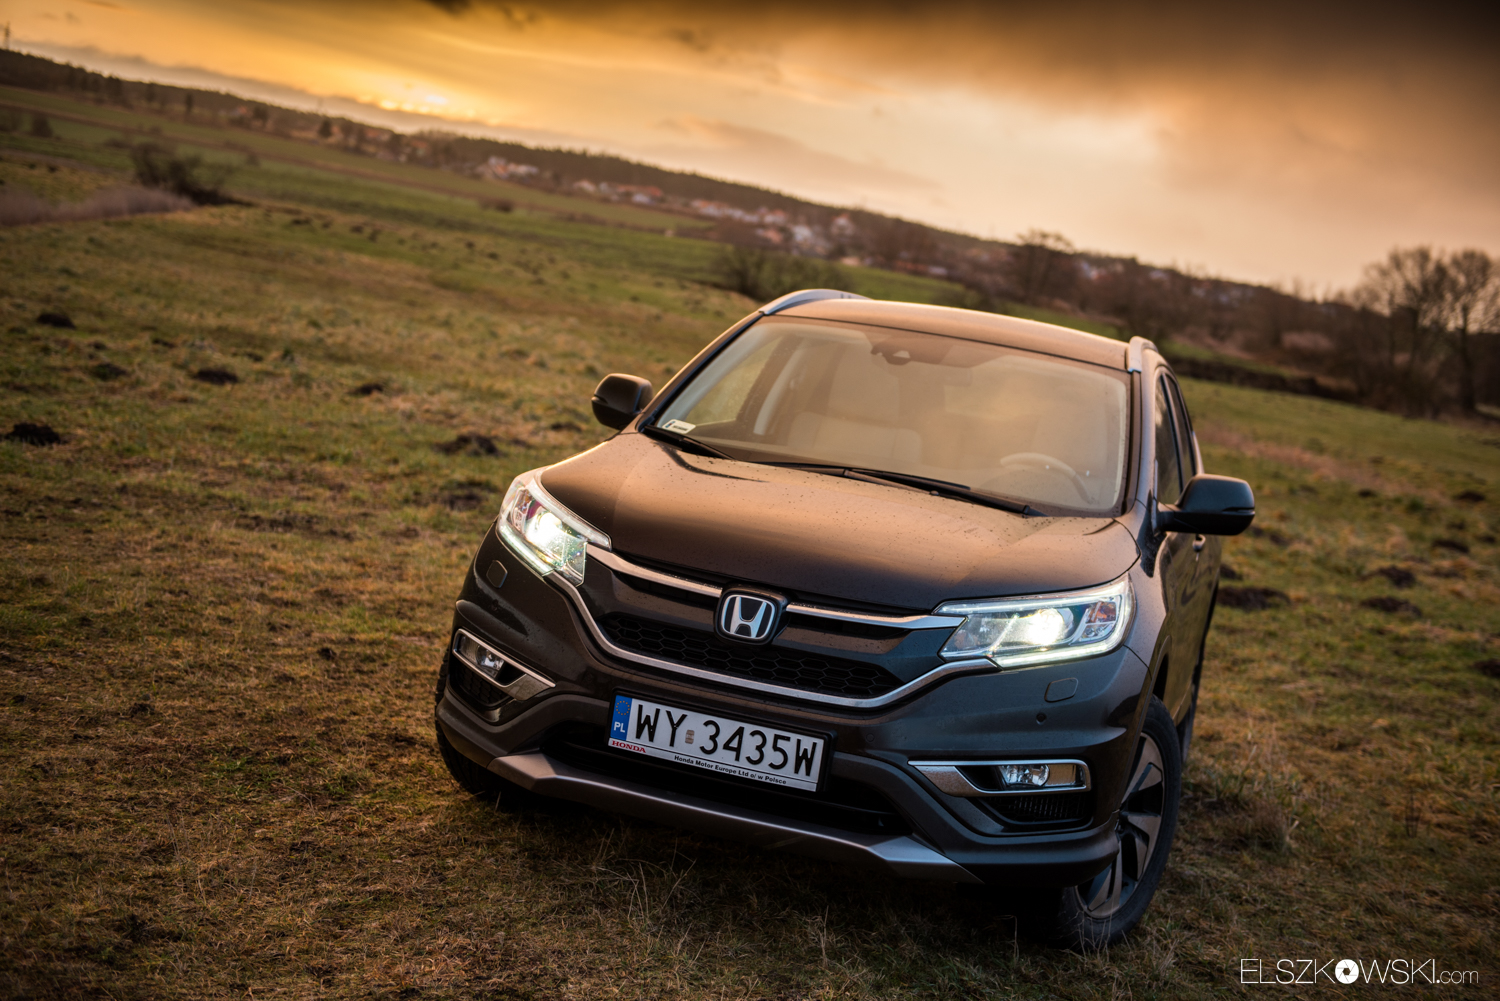 honda cr-v 1.6 i-dtec 160 at9 - test, opinia | motofilm.pl